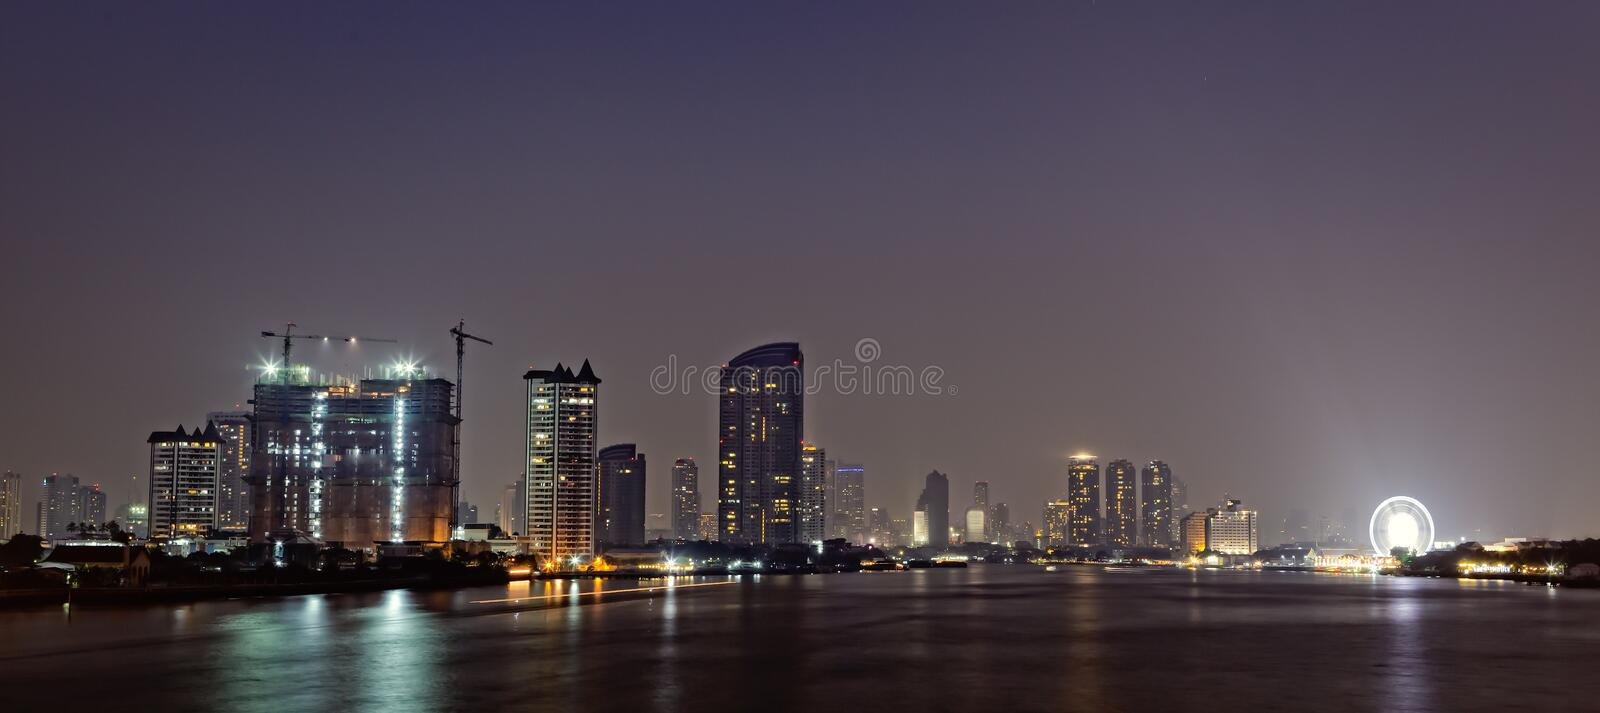 Download Bangkok In Evening, Reflection Of Buildings In Water Stock Image - Image: 29009125